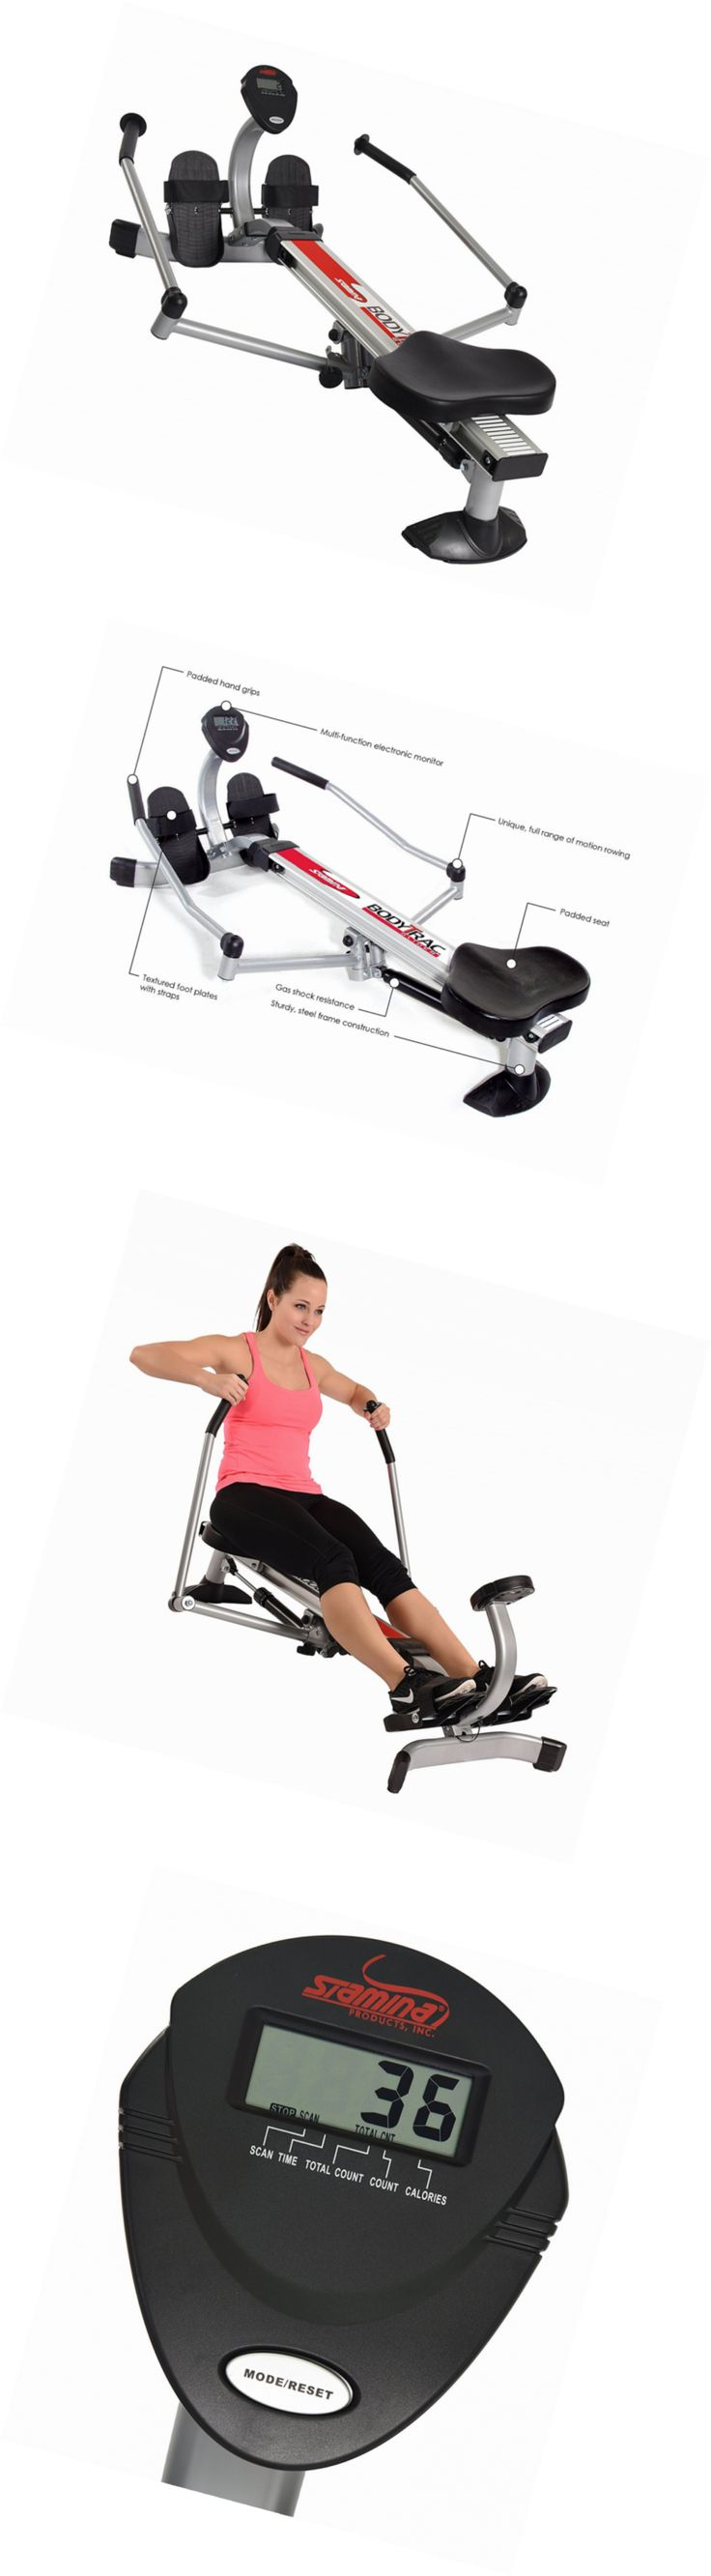 Rowing Machines 28060: Stamina Body Trac Glider 1050 Rowing Machine -> BUY IT NOW ONLY: $157.96 on eBay!